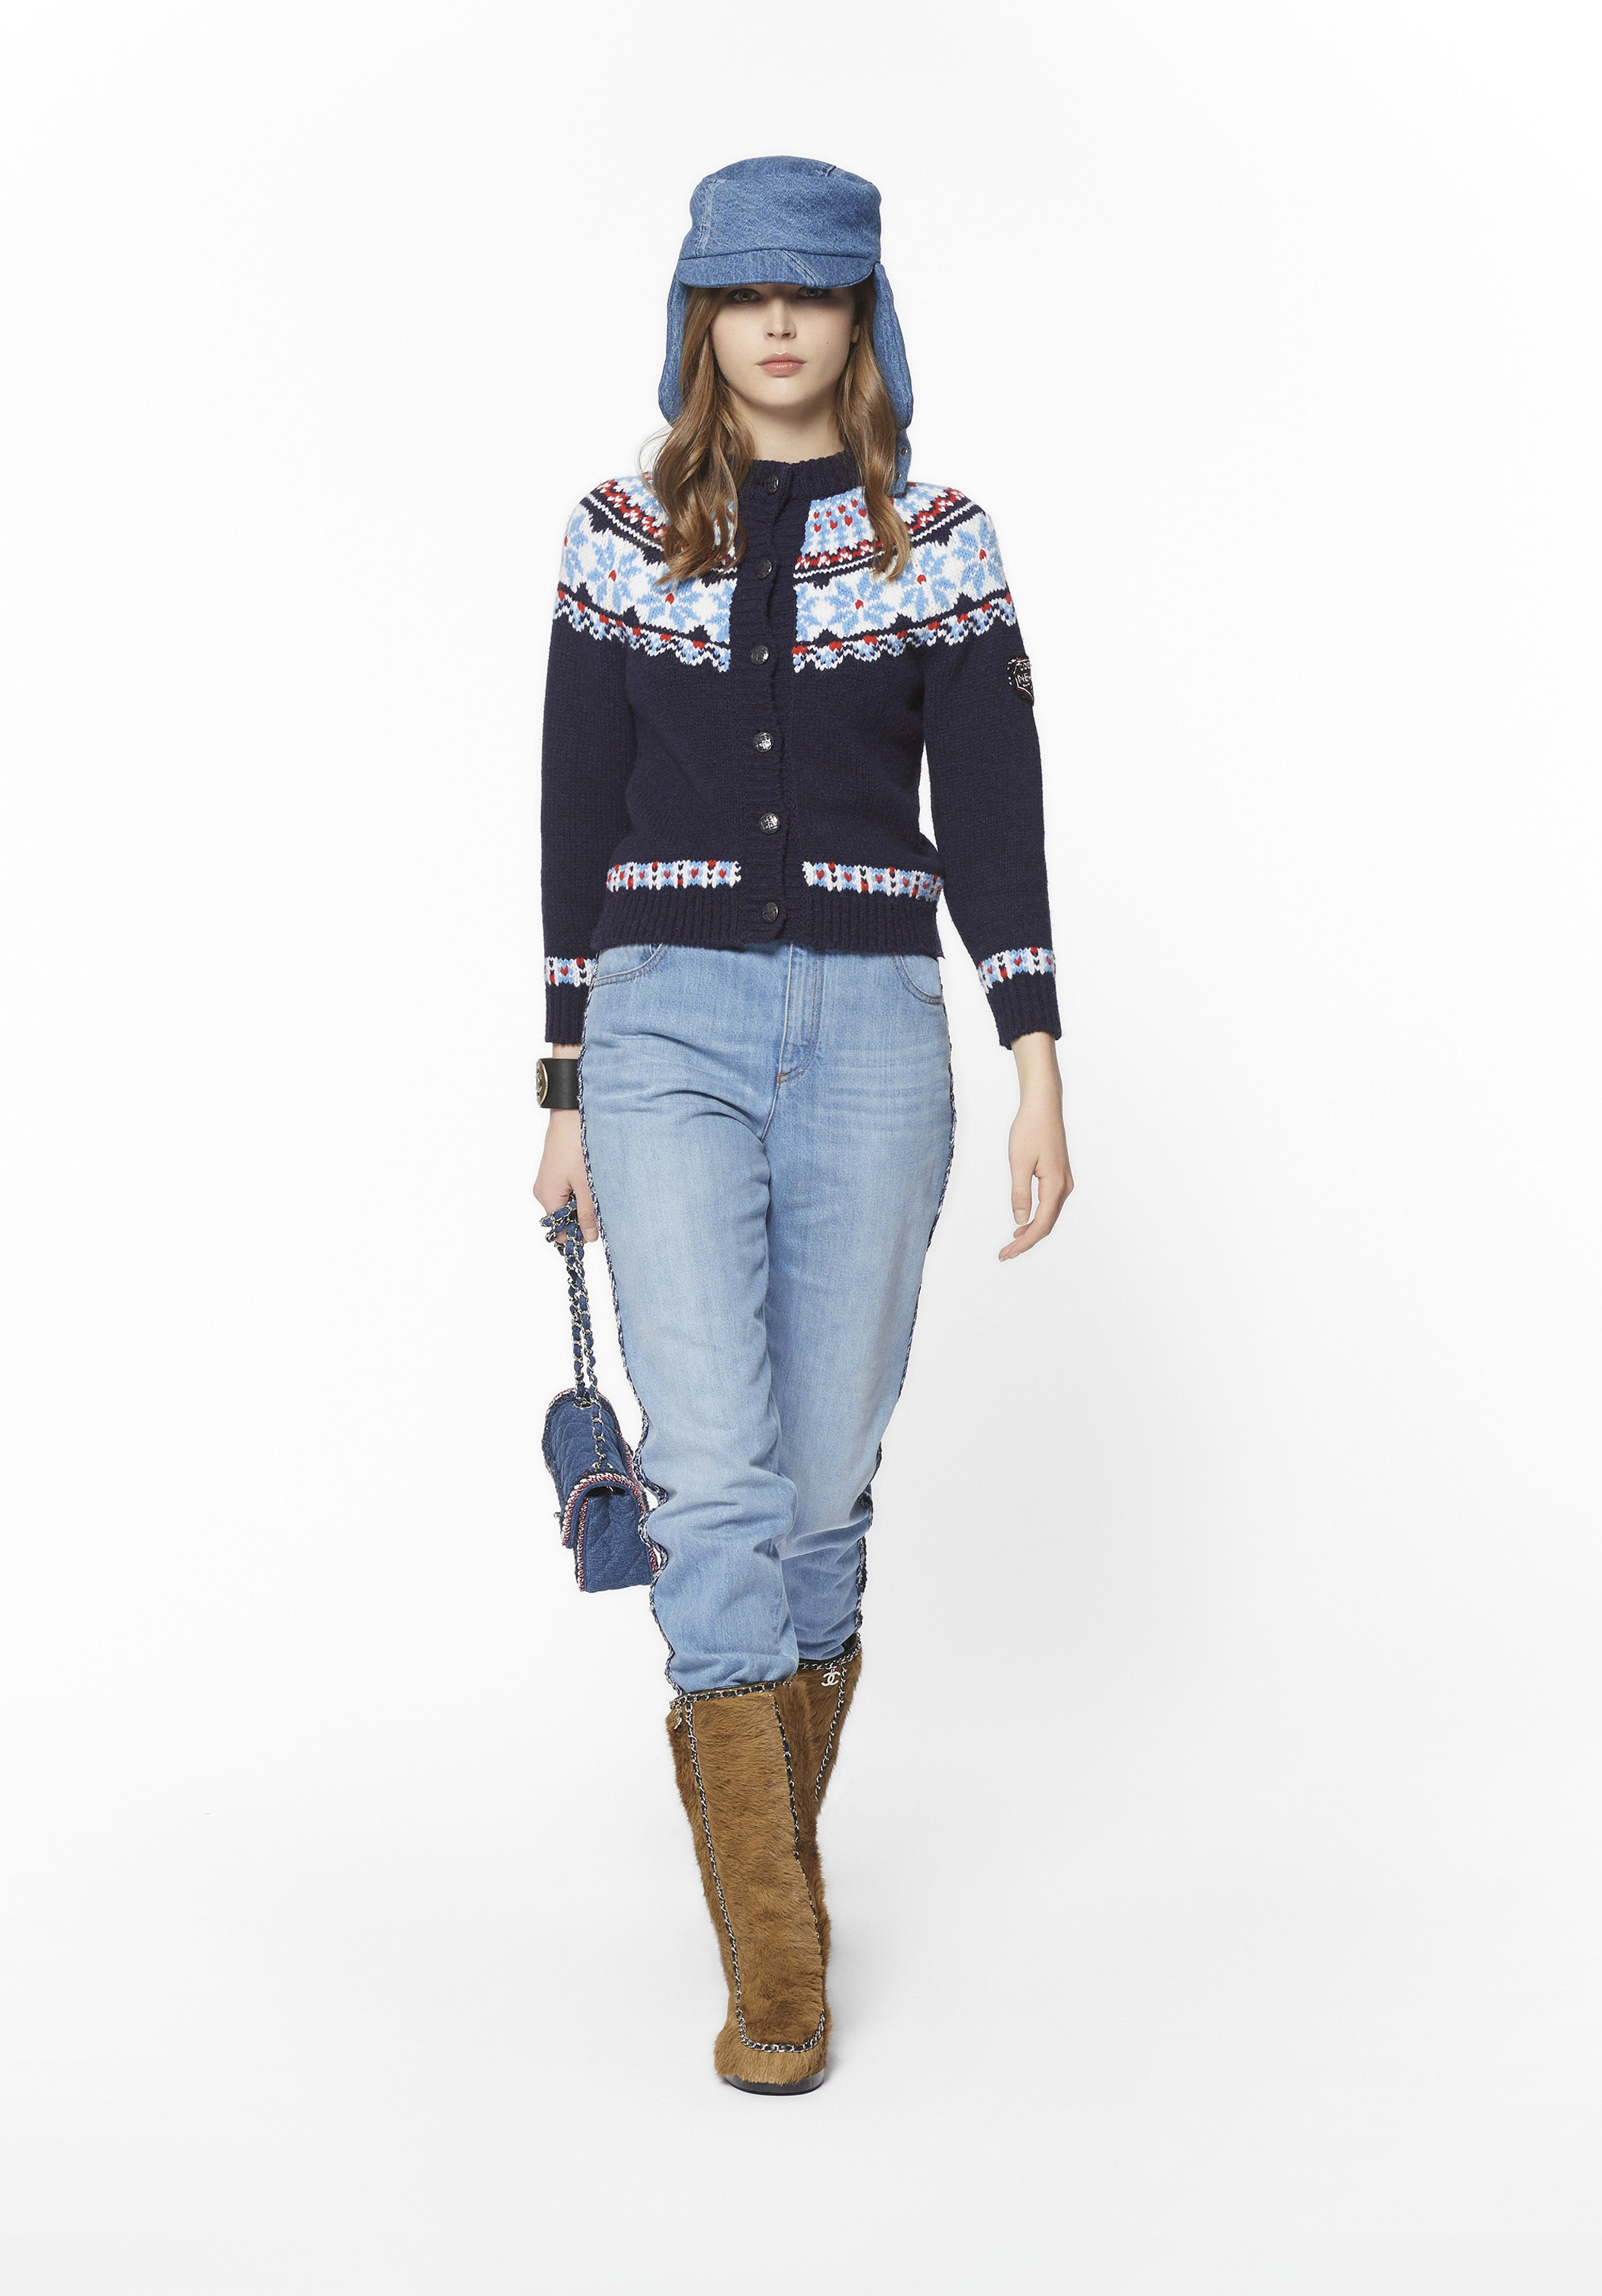 Look 18 - Coco Neige Collection